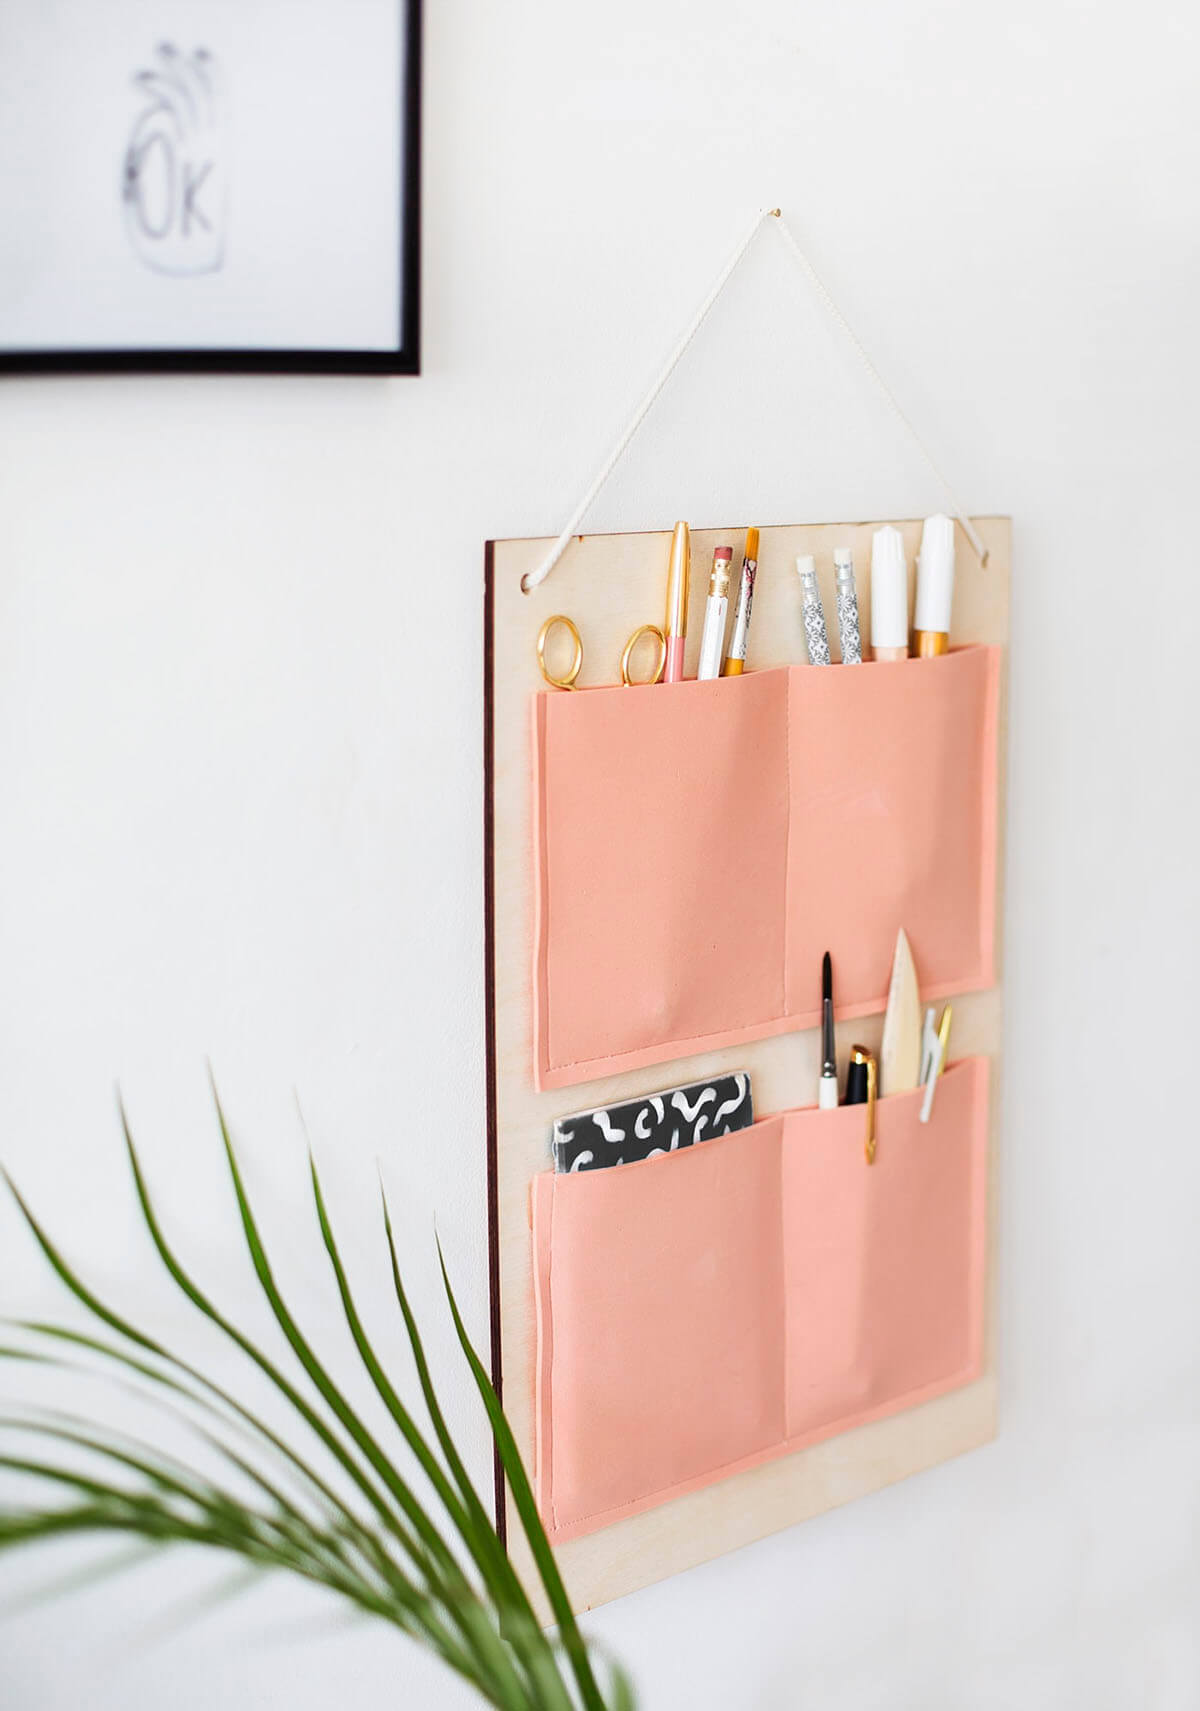 Peachy Keen Decorative Hanging Organizer